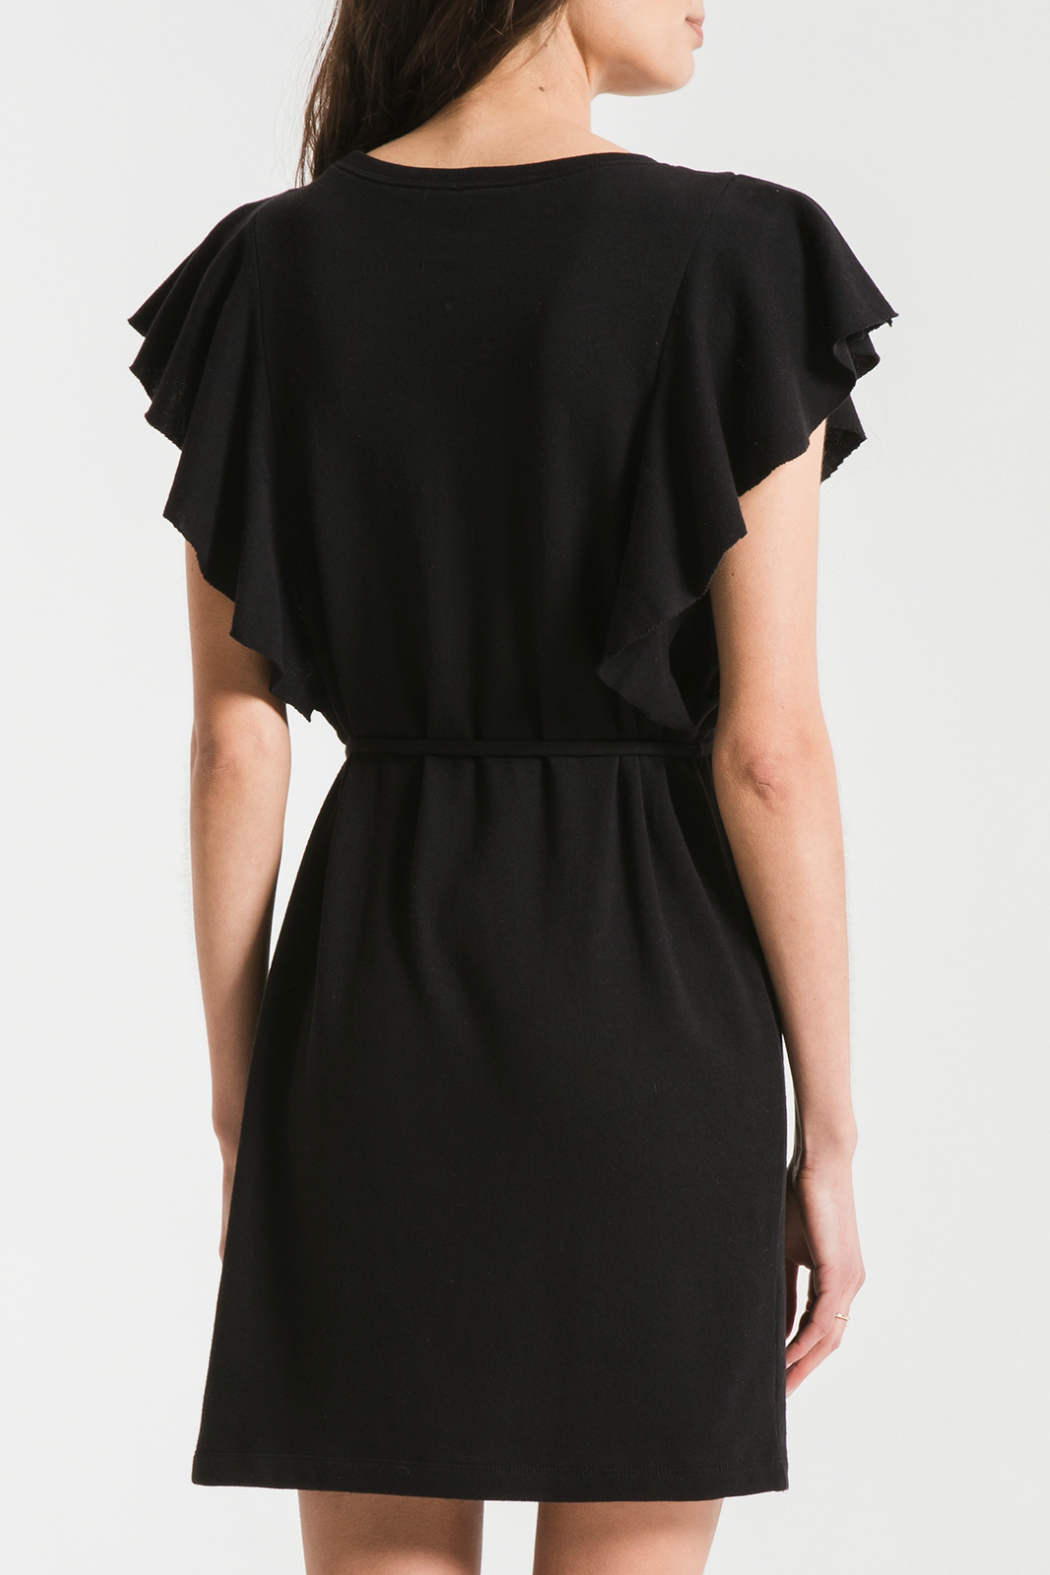 z supply Cap Ruffle Sleeve Dress - Side Cropped Image